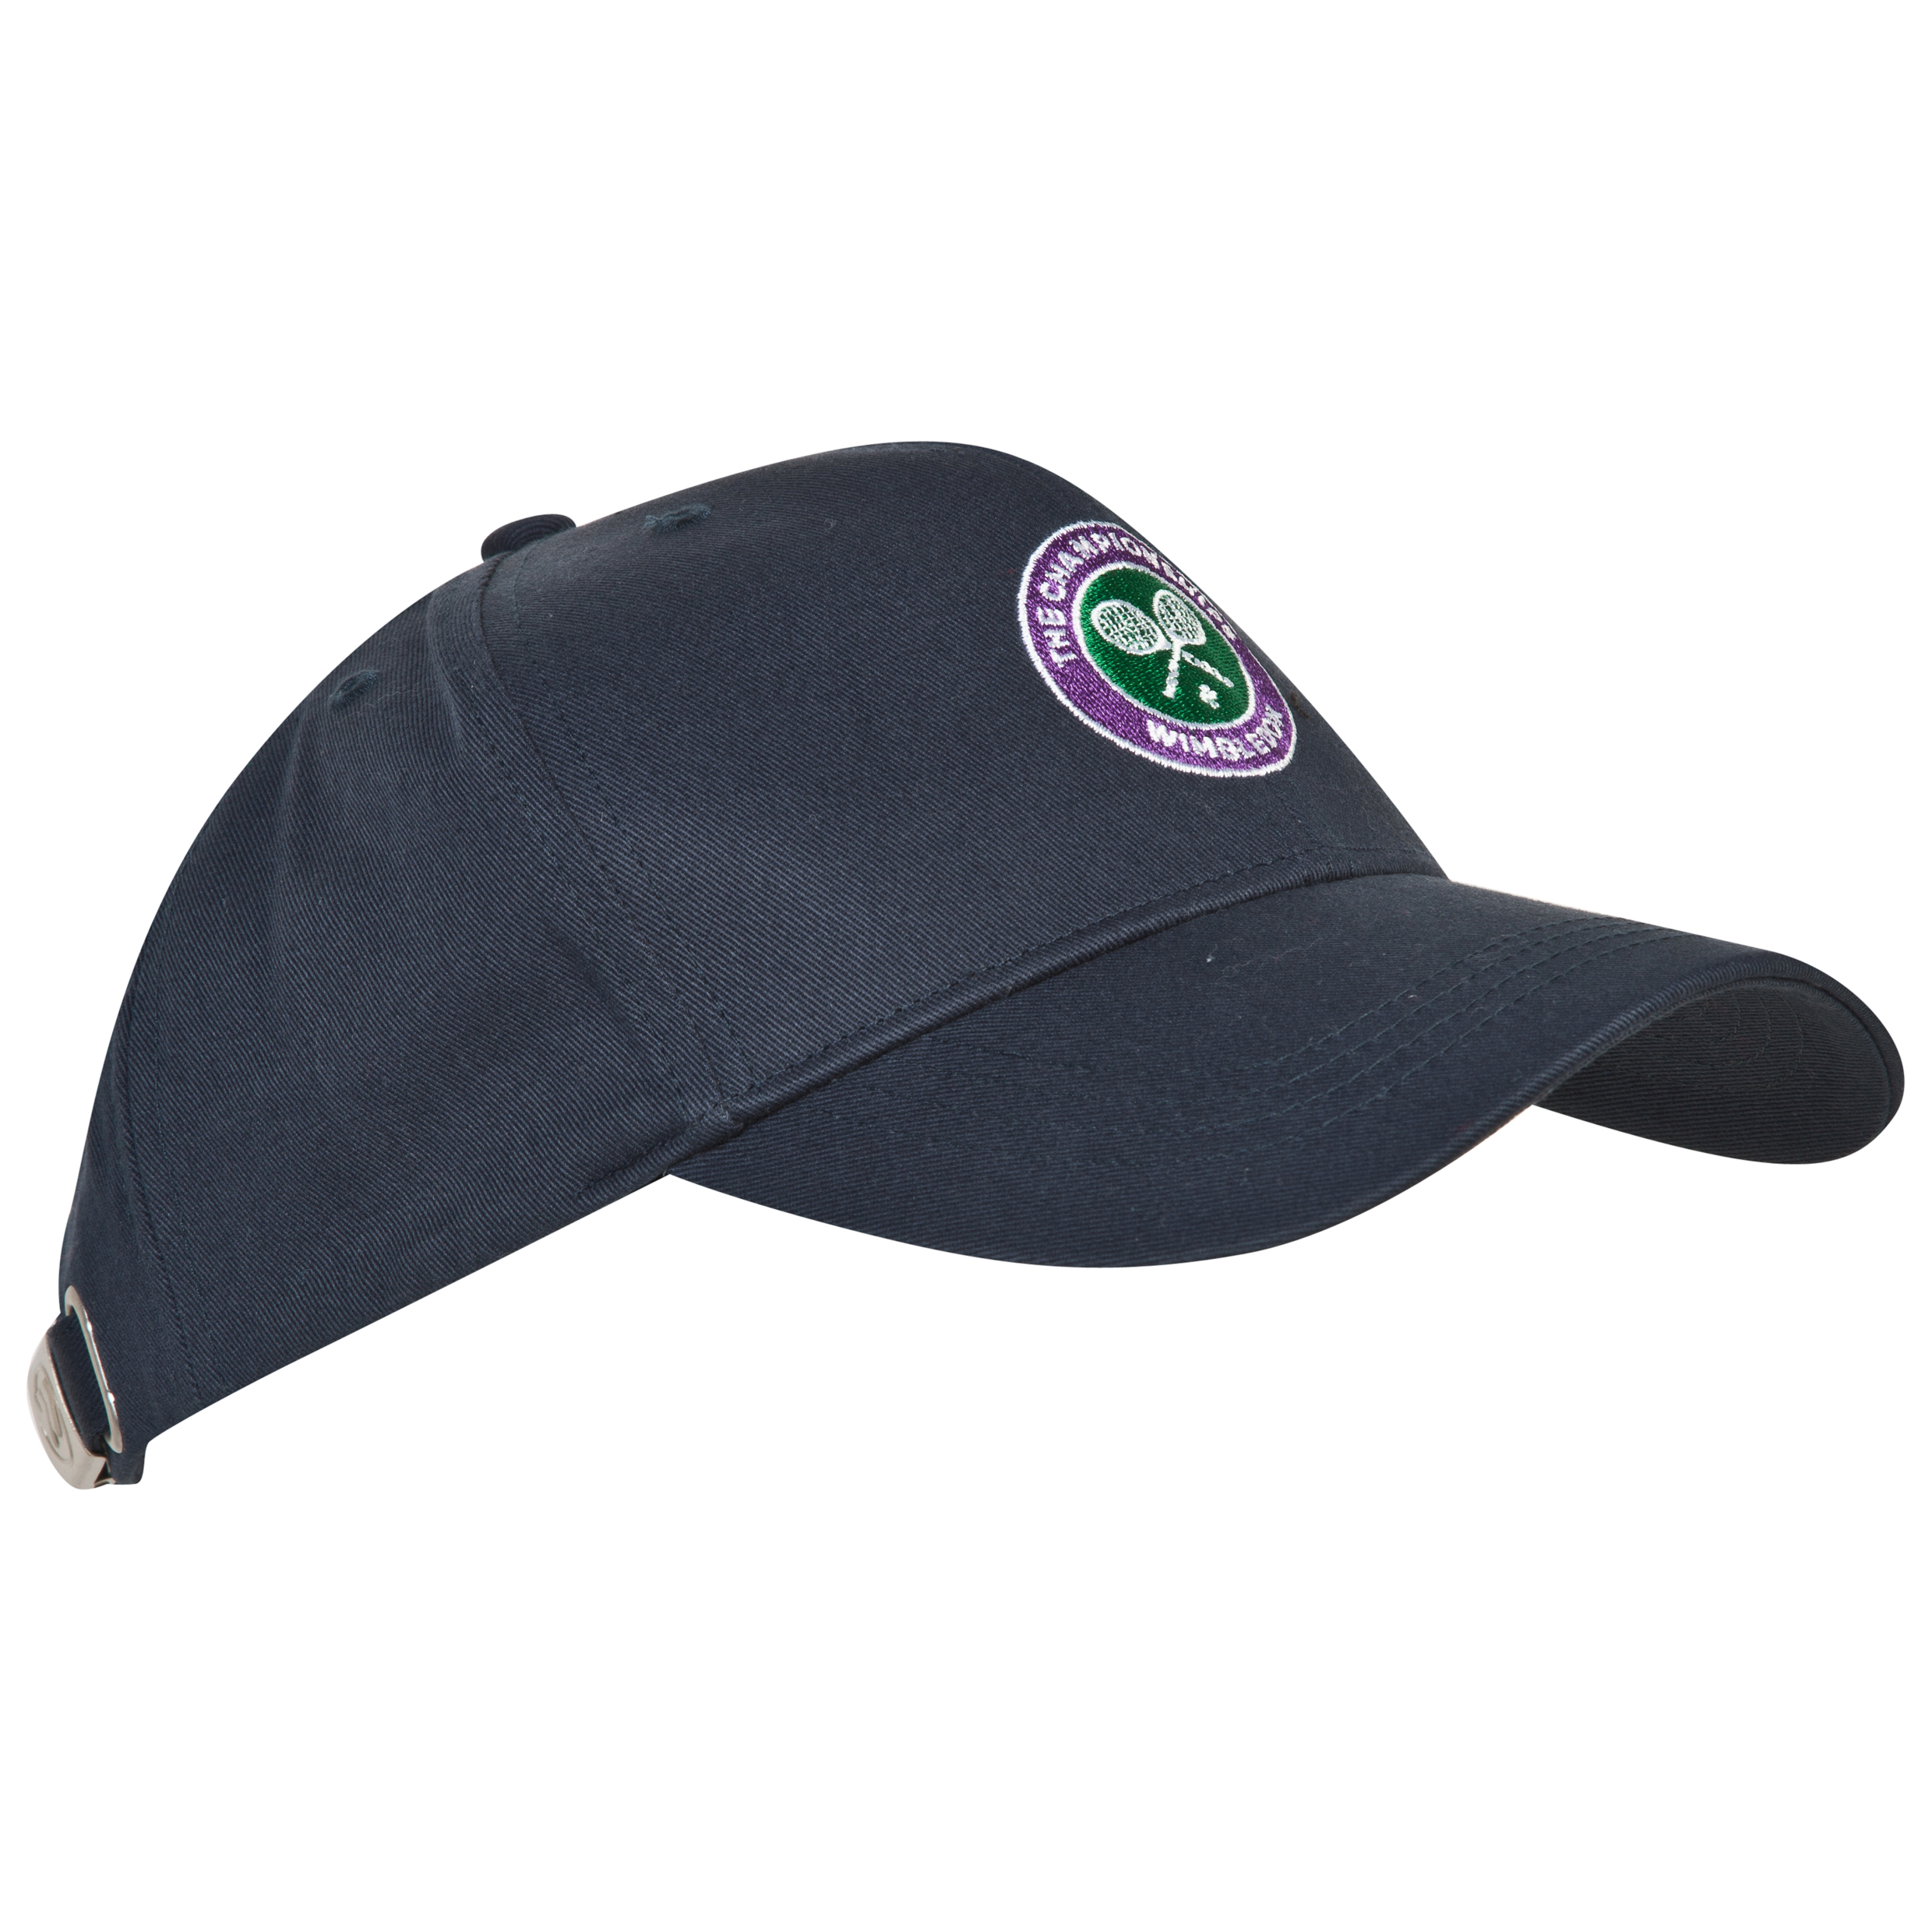 Wimbledon Crossed Rackets Cap - Navy